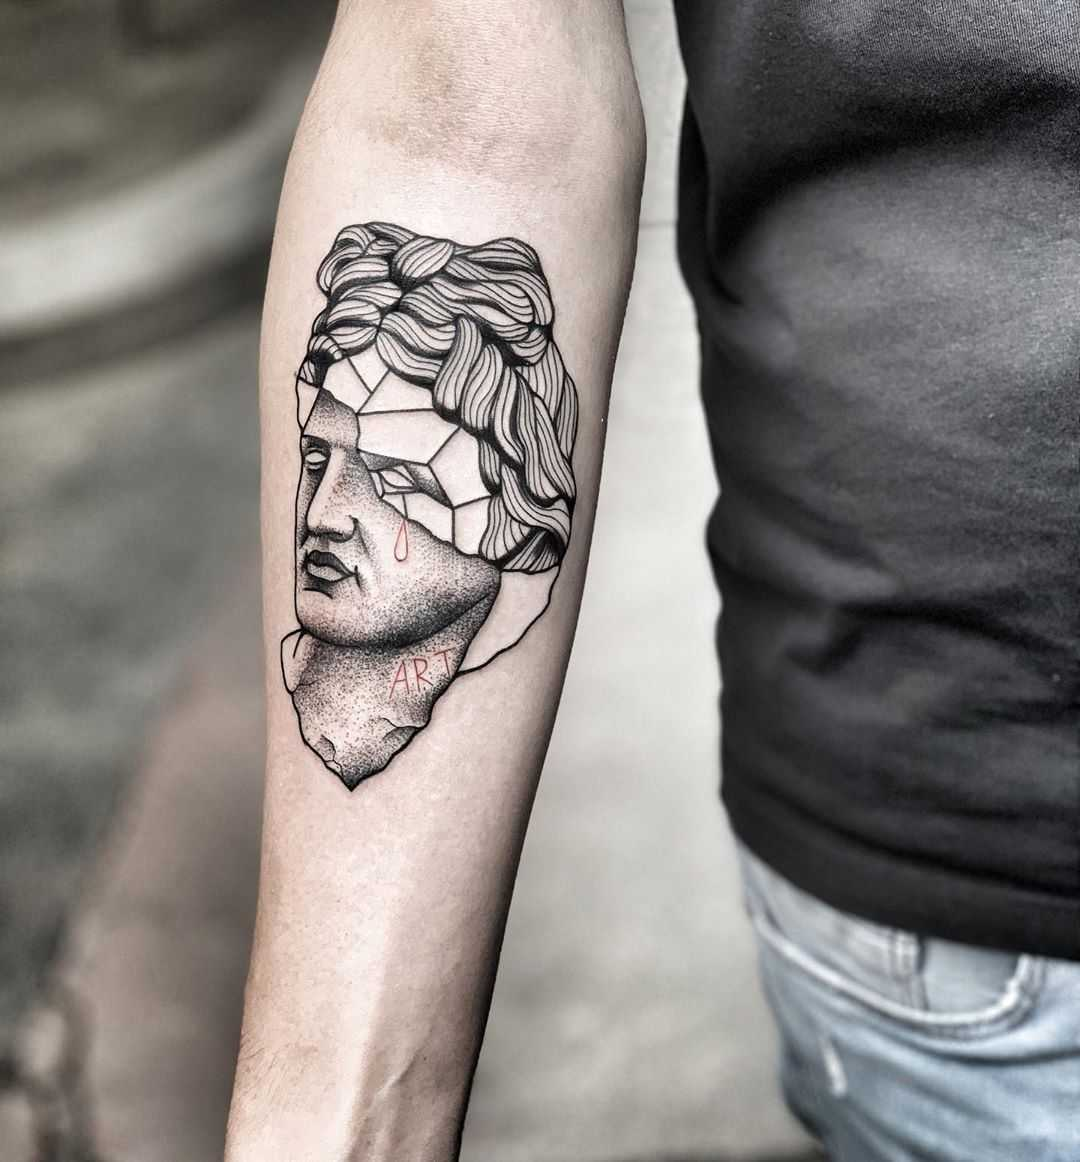 Apollo bust tattoo by Mike Nofuck